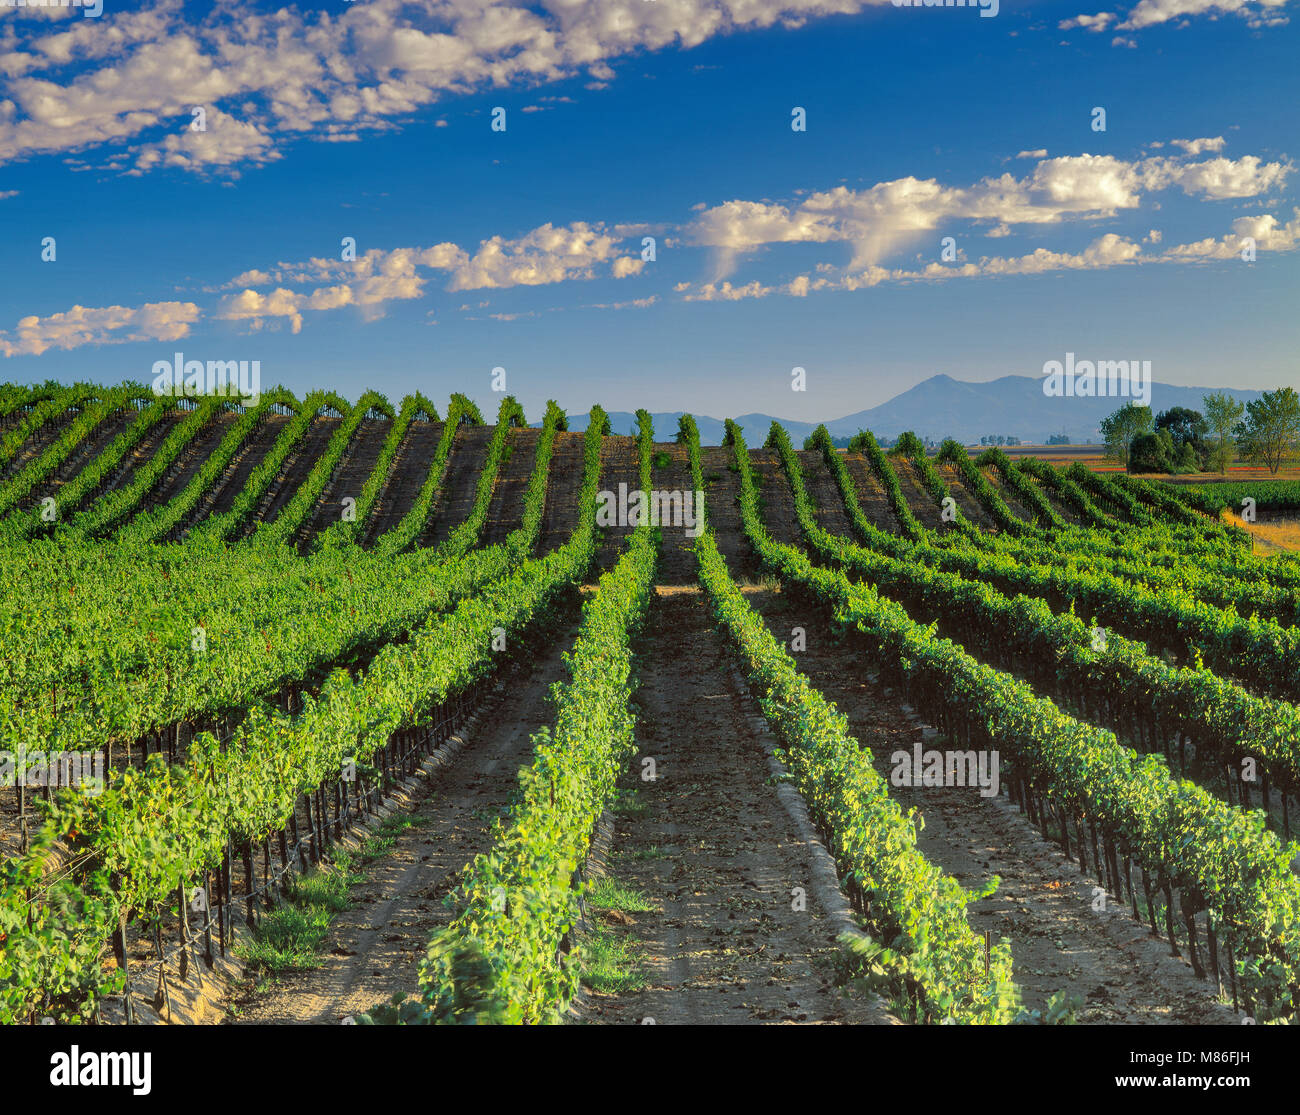 Vineyard, Carneros Appellation, Sonoma County, California - Stock Image